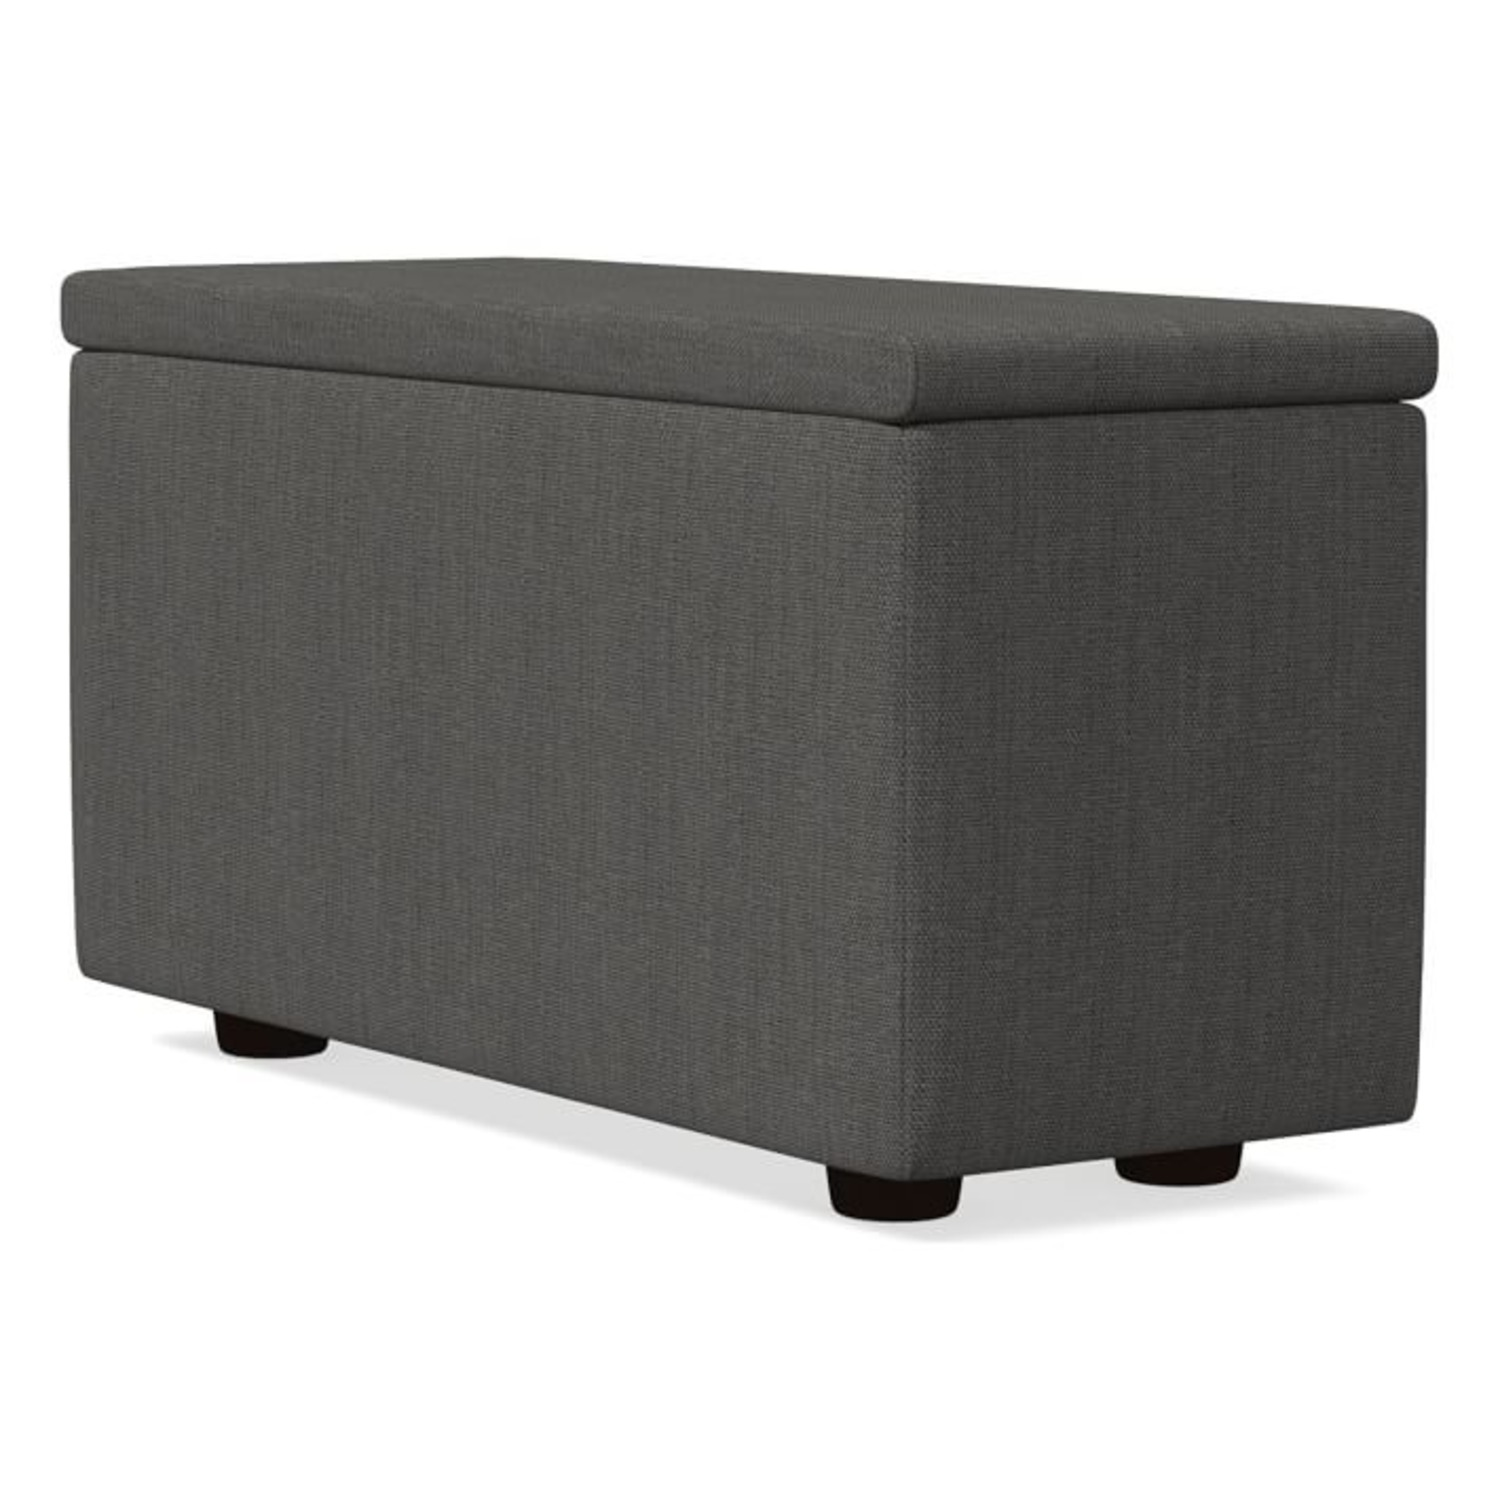 West Elm Enzo Sectional Arm With Storage - image-2